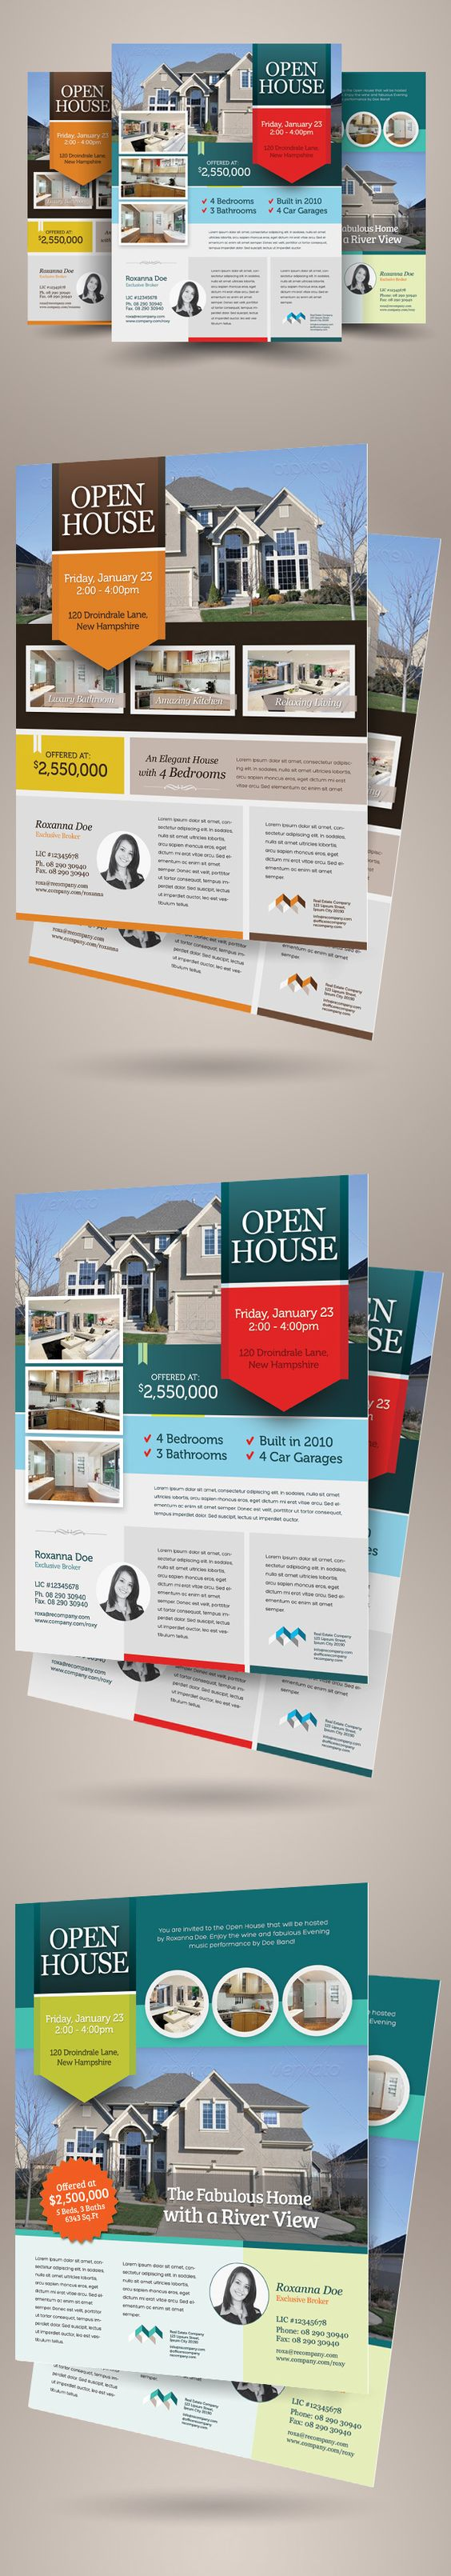 real estate open house flyers by kinzi wij via behance leaflet real estate investing has a lot of benefits to offer but there are easy real estate investing mistakes one can make which have a profound impact more